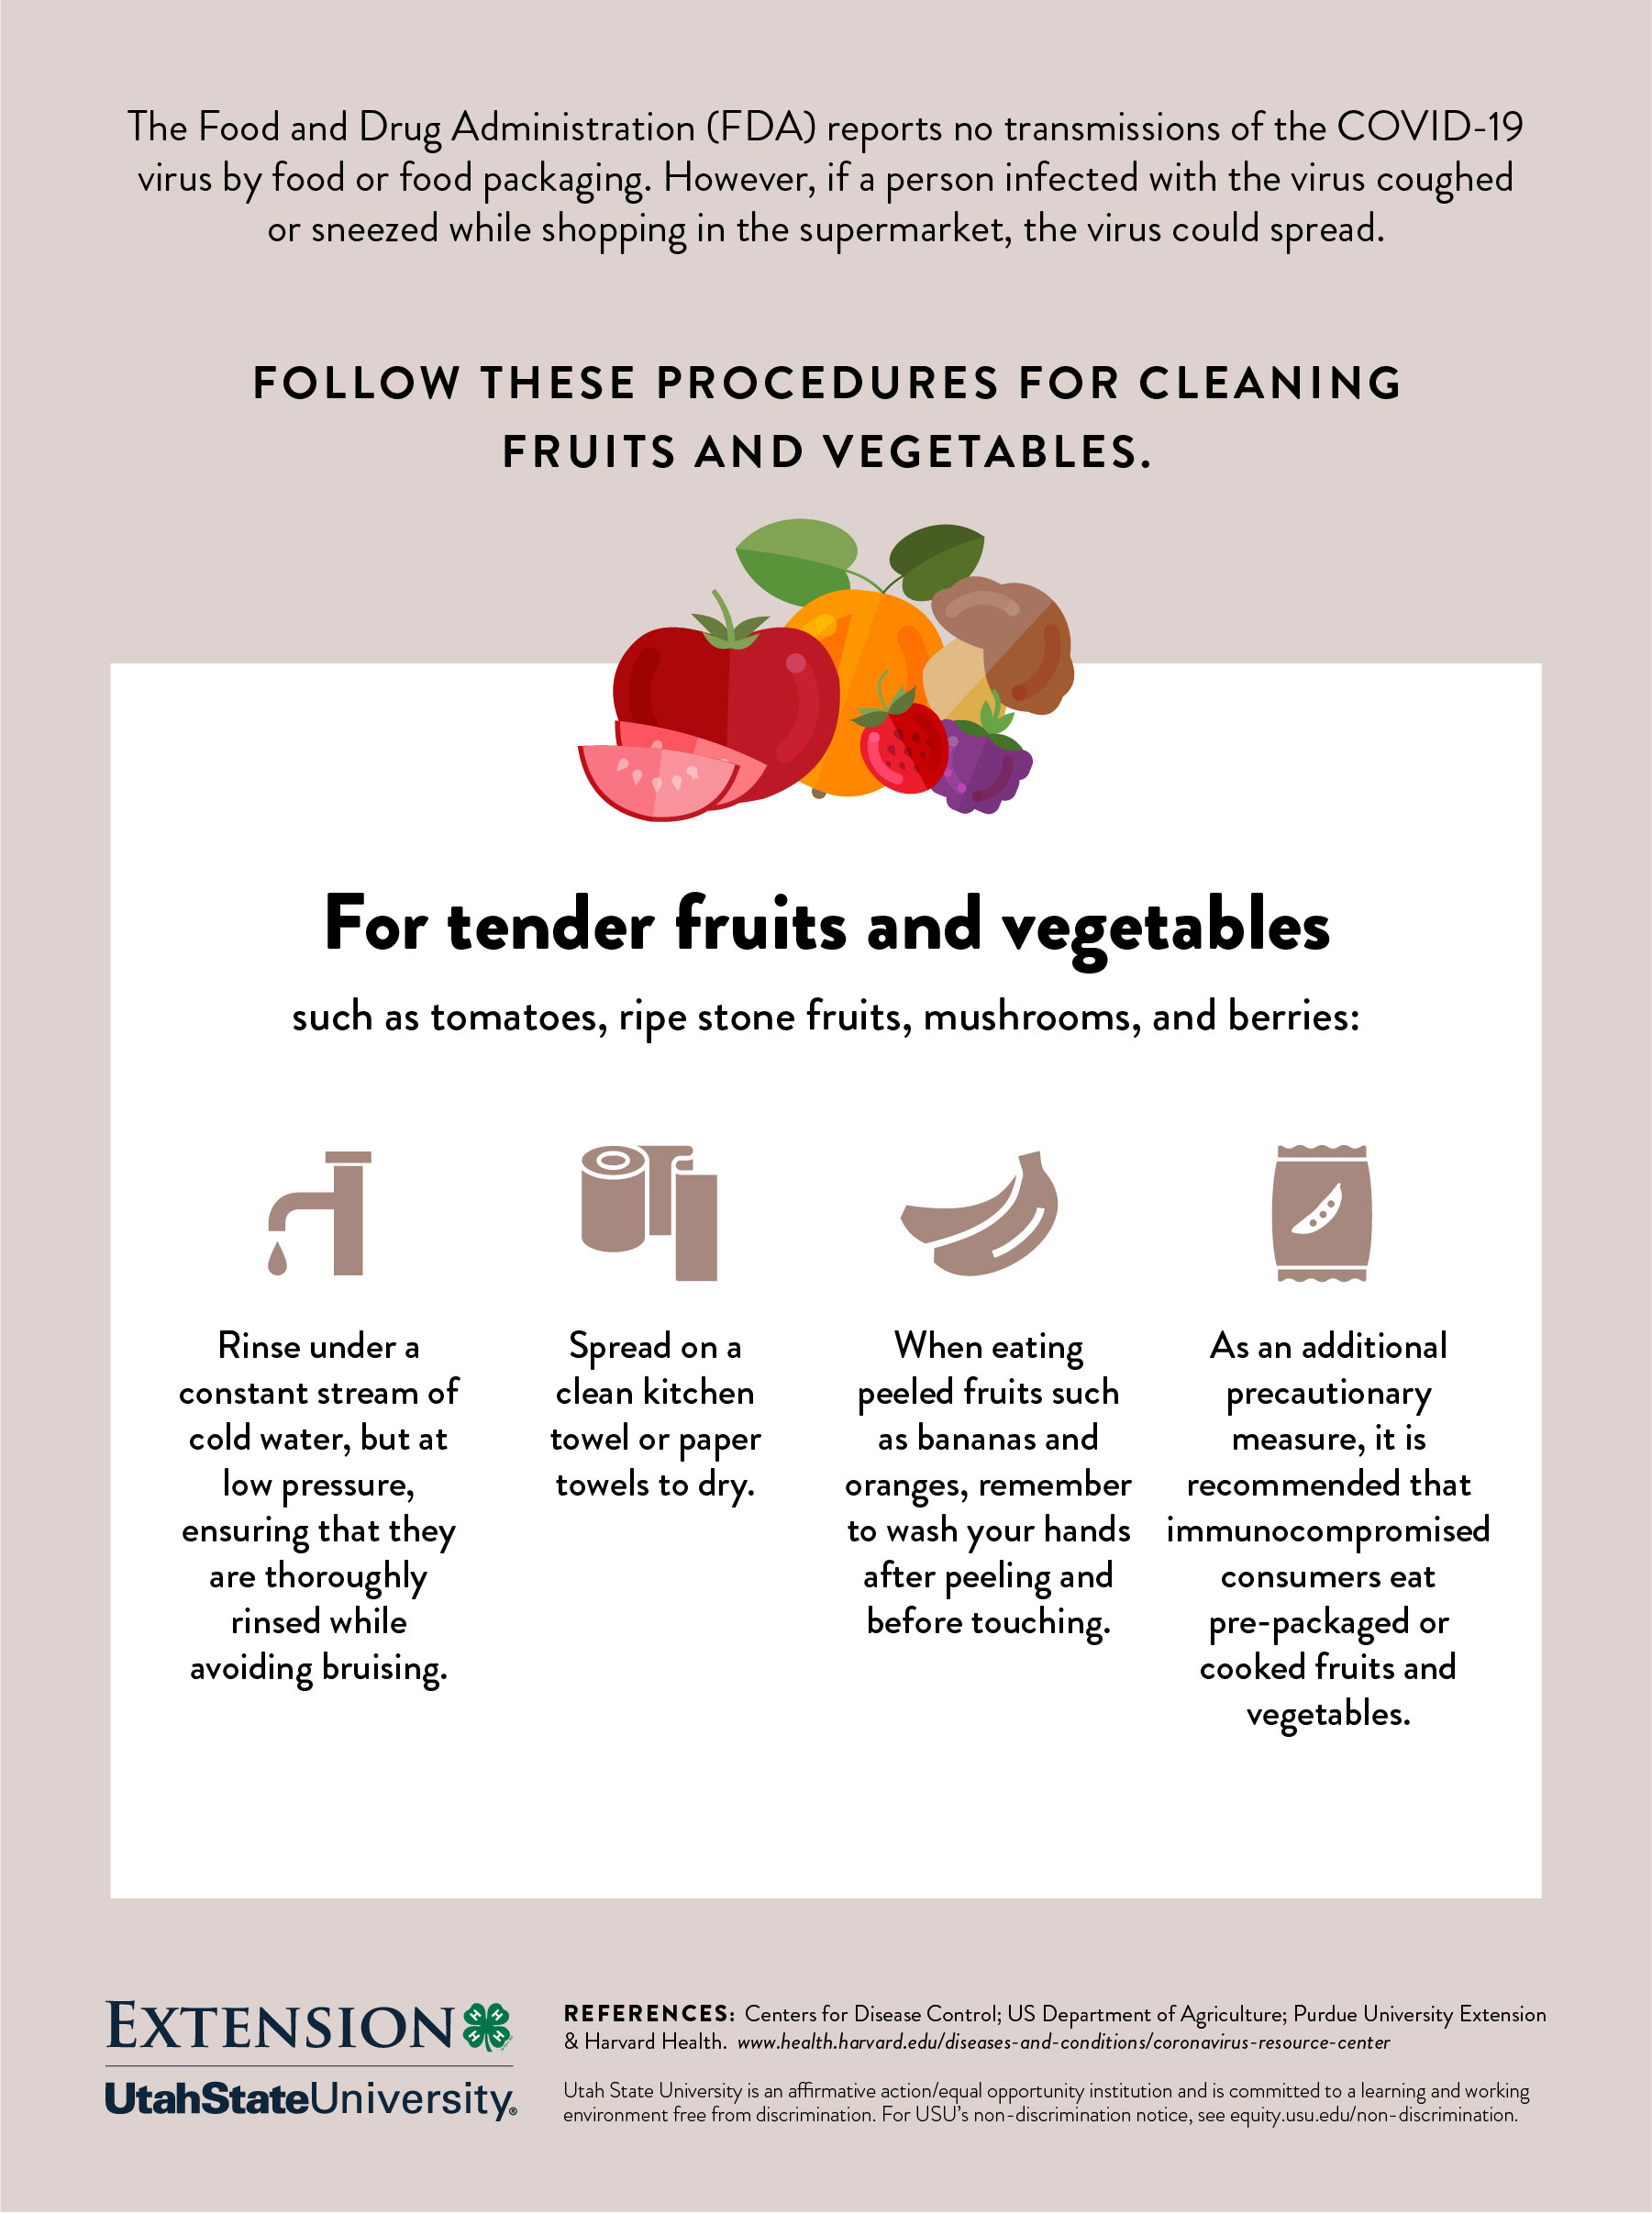 Cleaning tender fruits and veggies